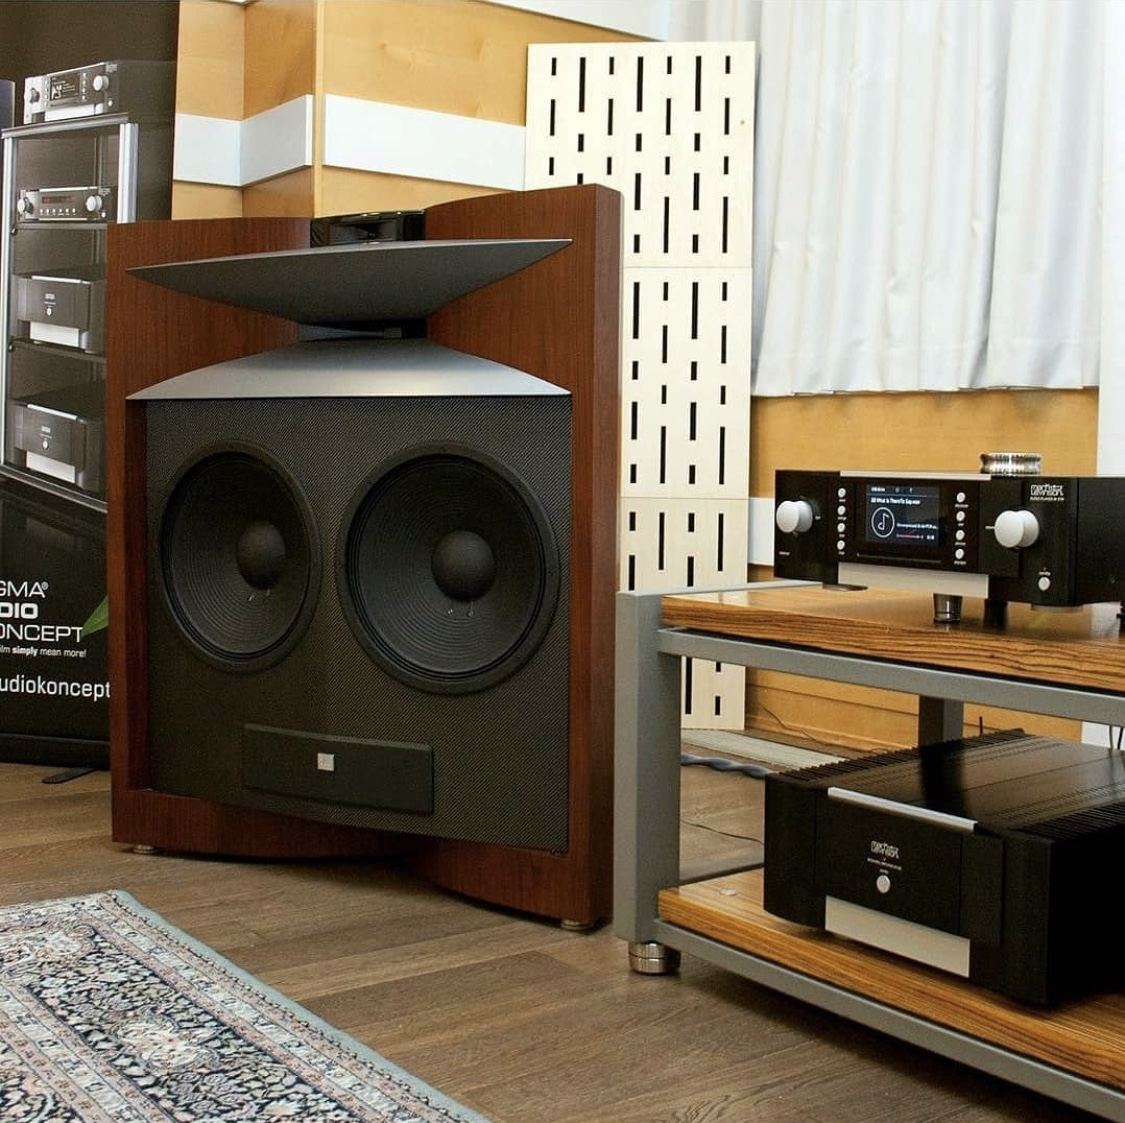 JBL Everest giant speakers